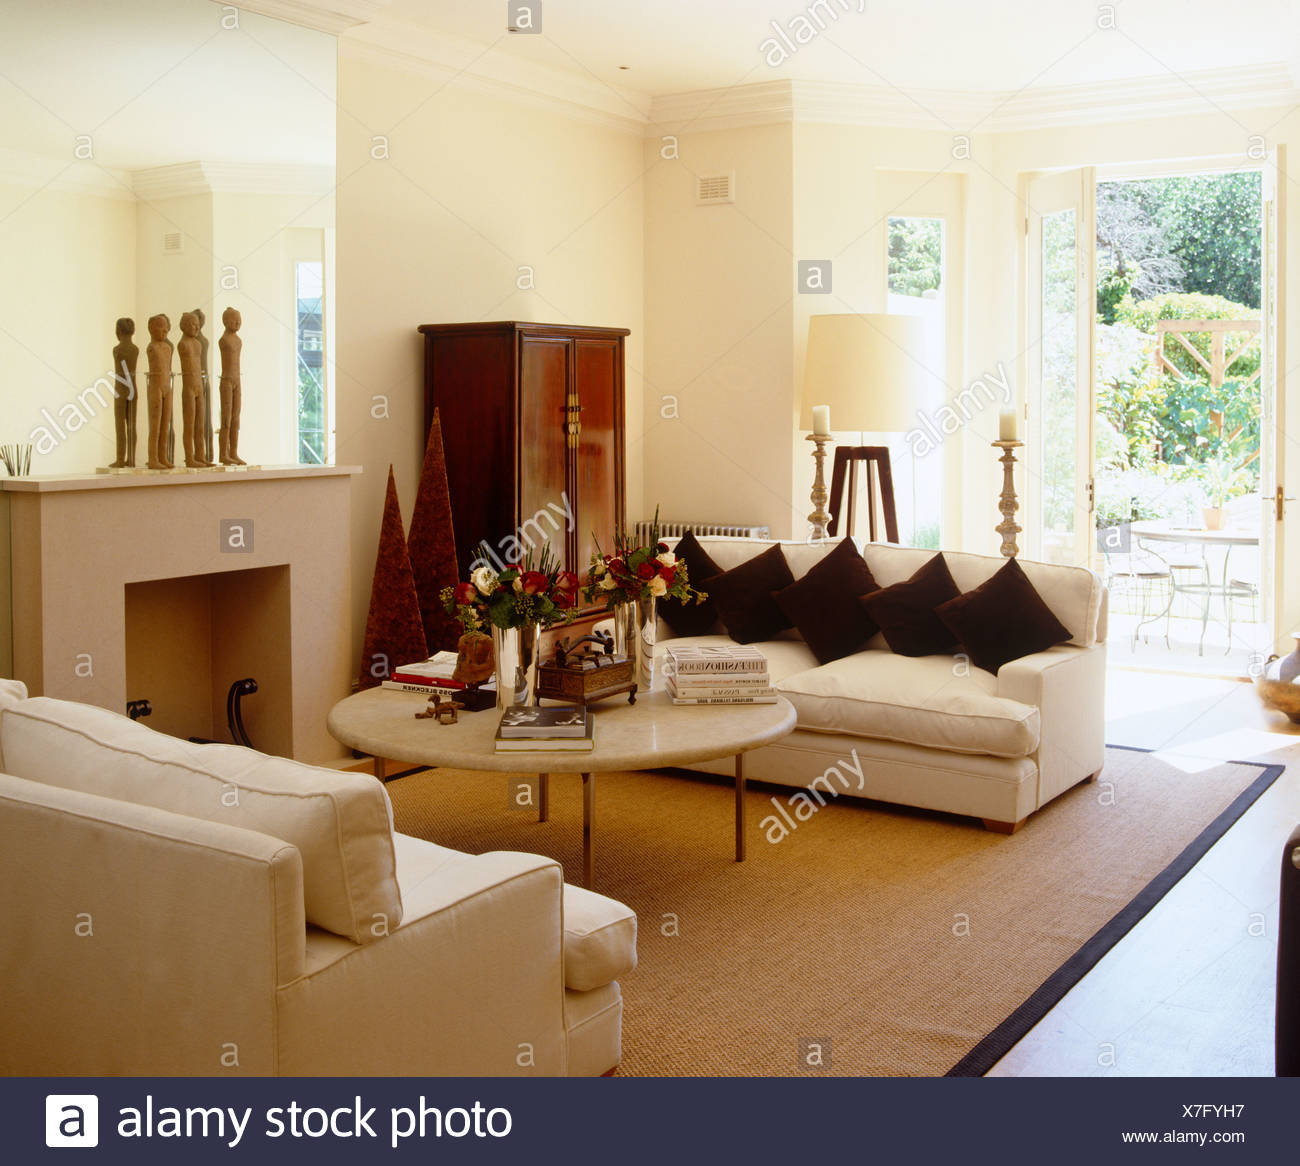 Cream Sofas Facing Each Other Over Coffee Table In Front Of